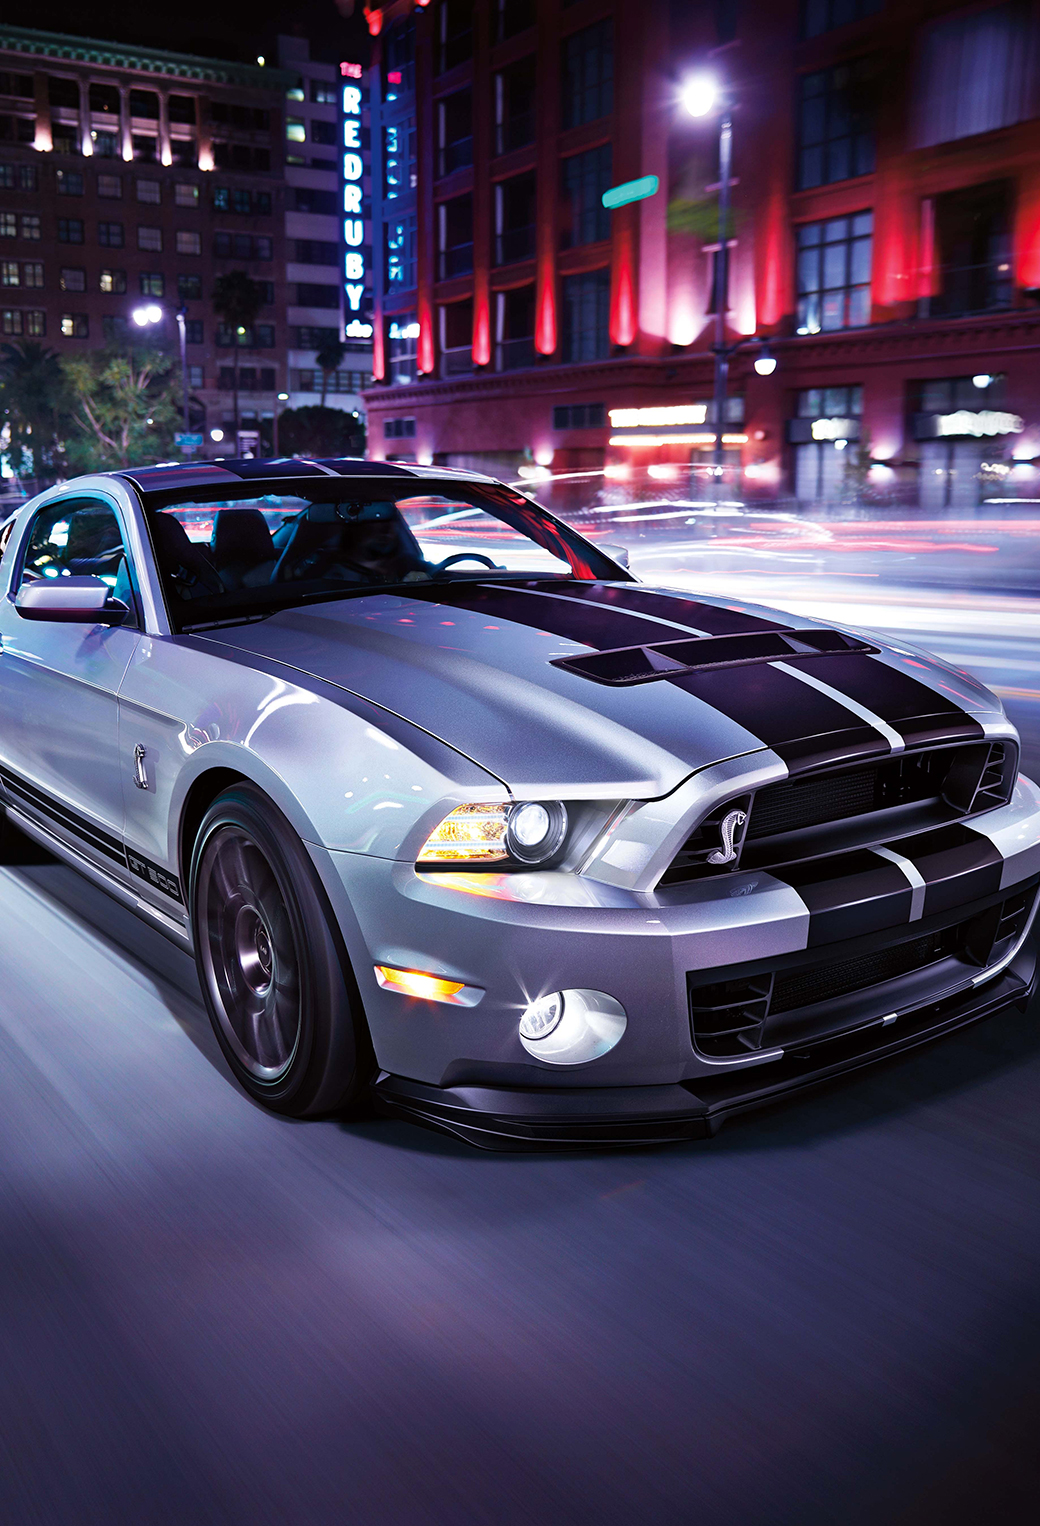 Ford Mustang 3Wallpapers iPhone Parallax Les 3 Wallpapers iPhone du 1040x1526